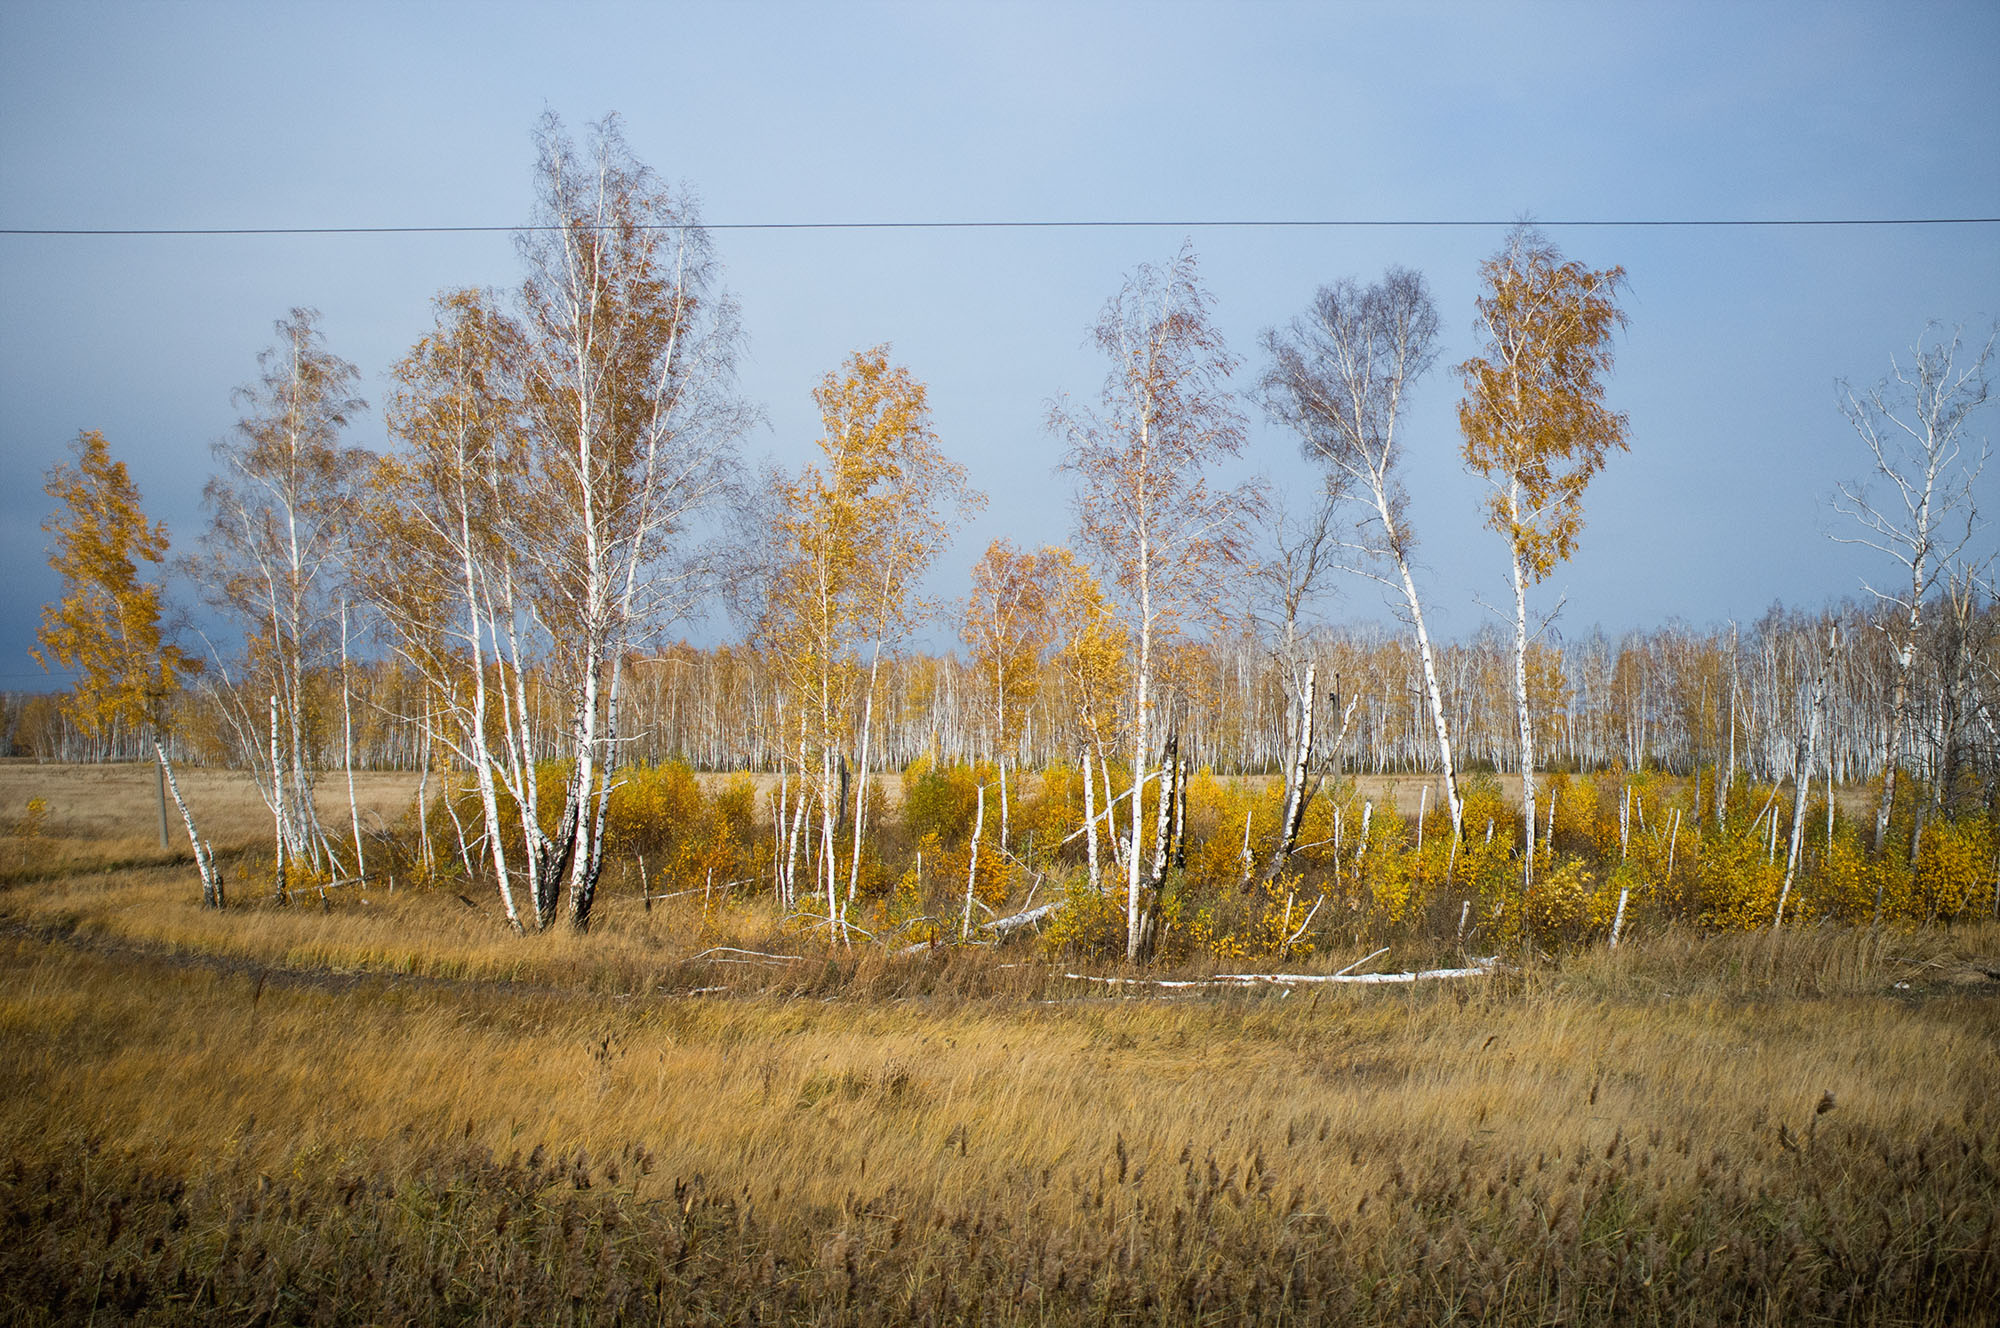 Endless fields of the birch trees.